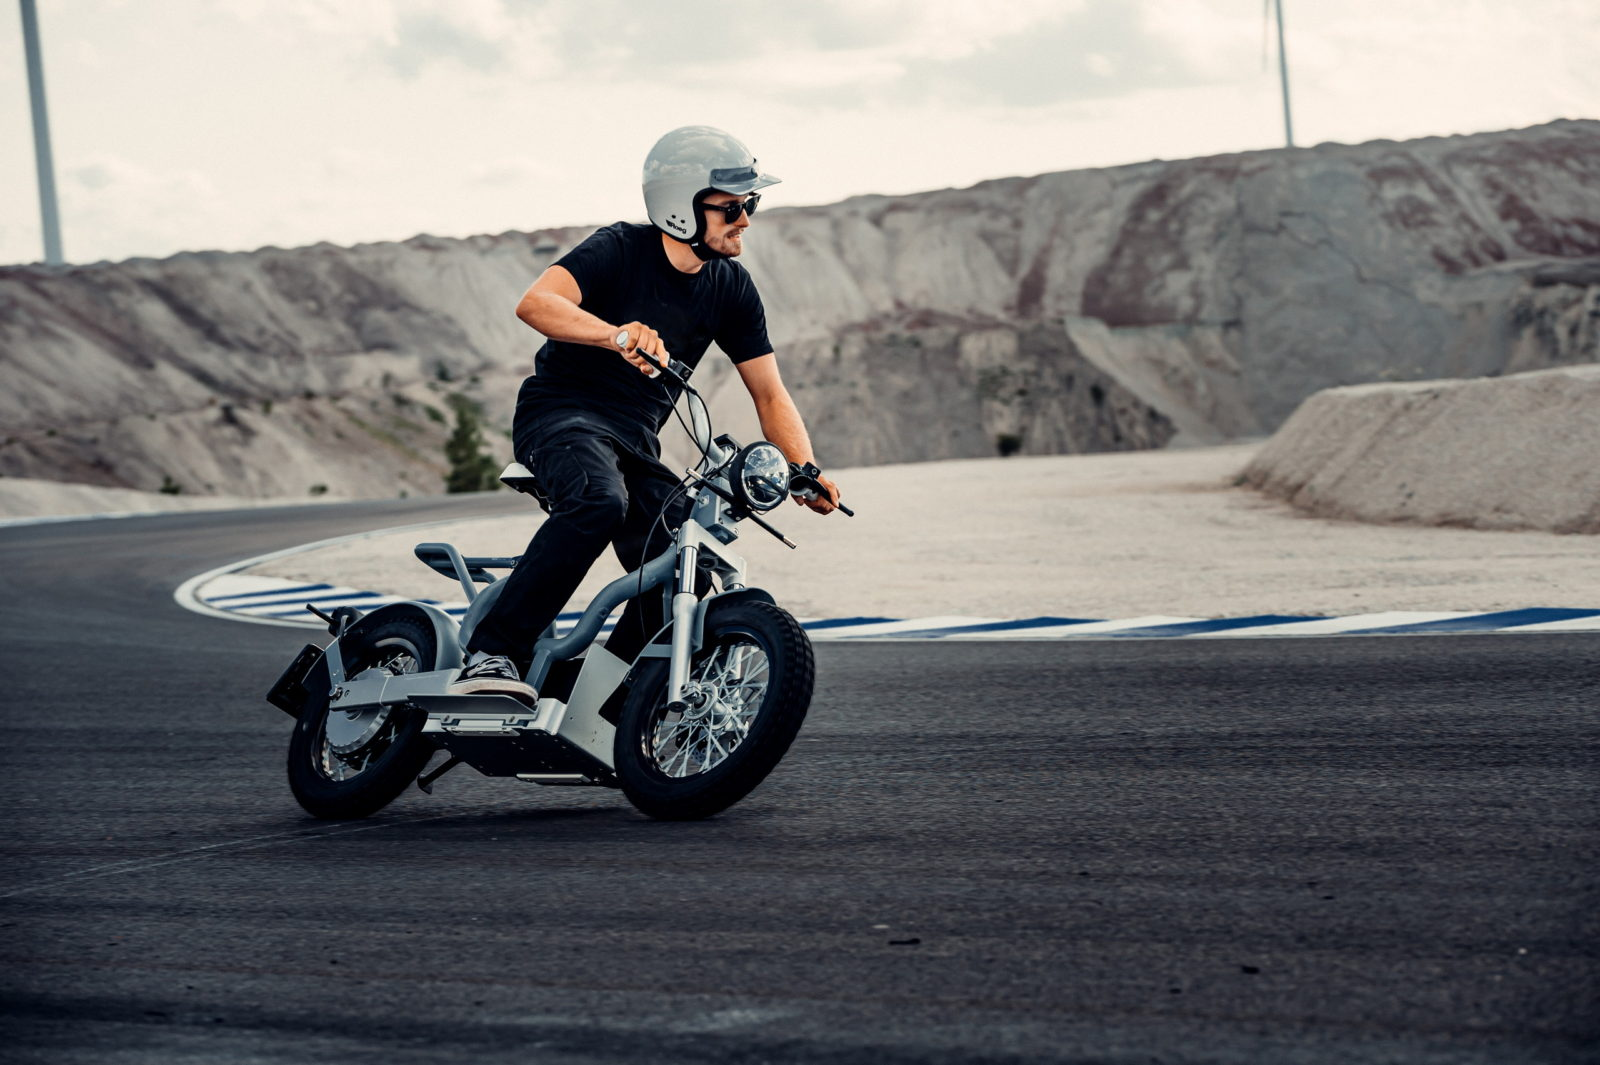 cake-rolls-out-durable-makka-electric-scooter,-designed-for-urban-riding